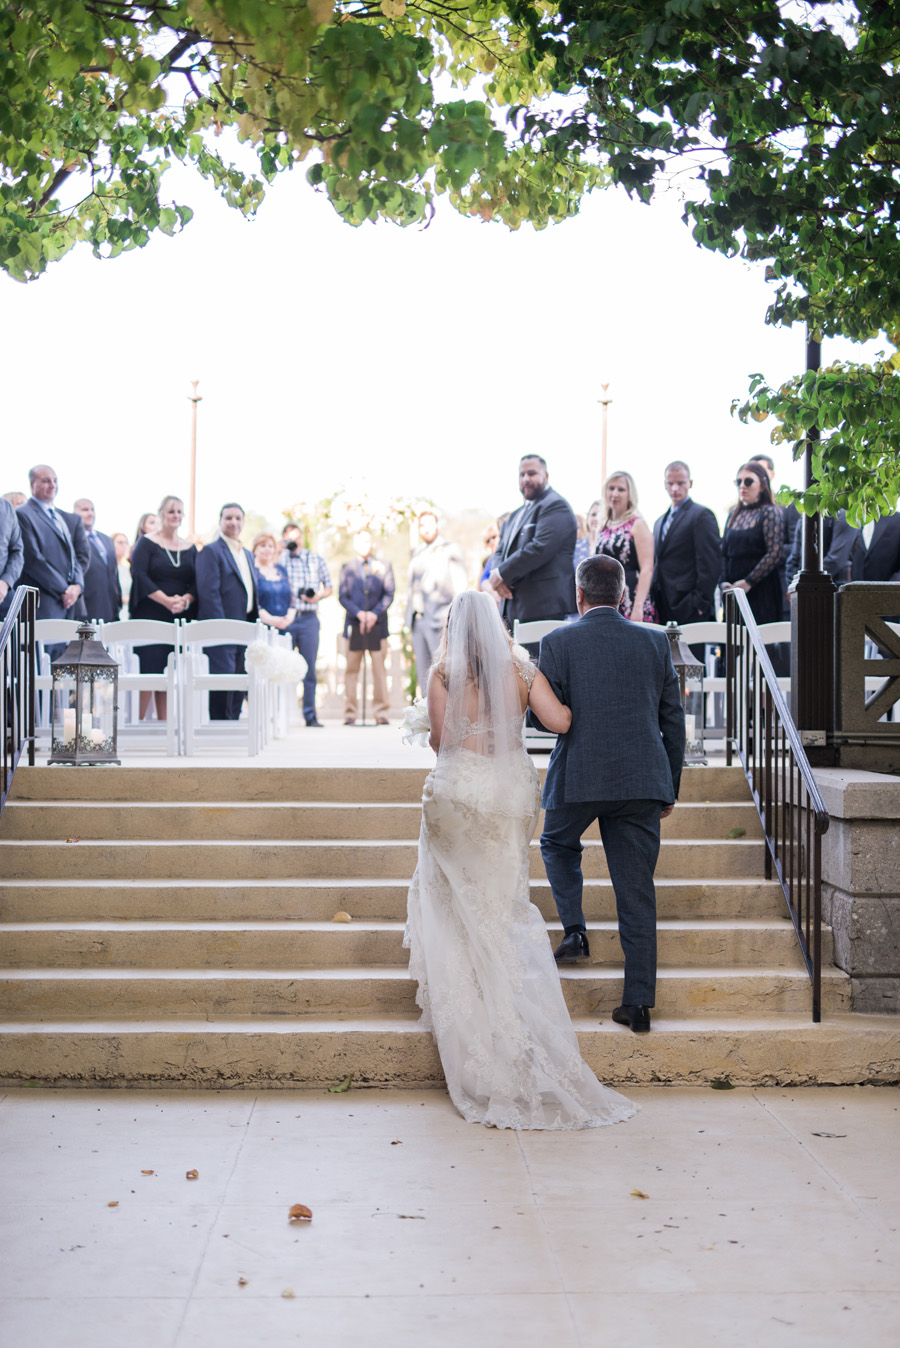 Dad escorts bride to her wedding ceremony.